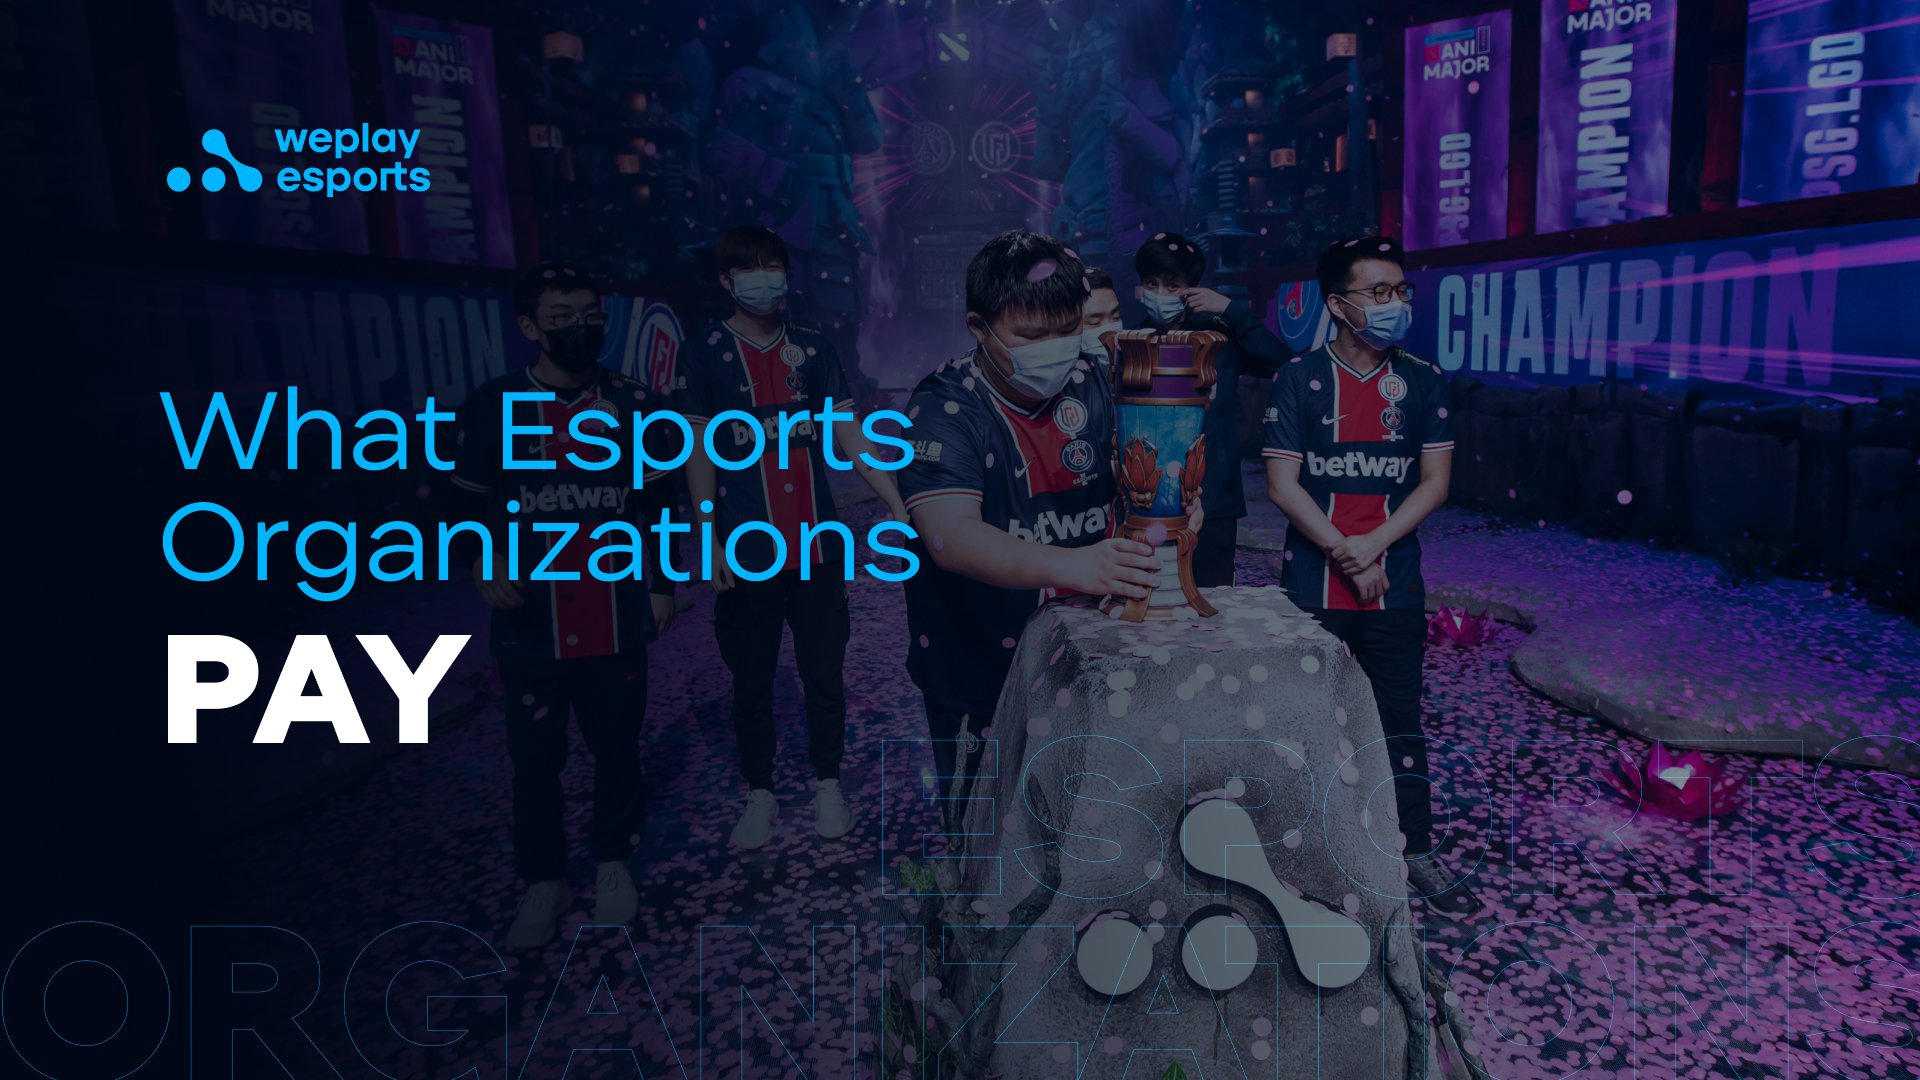 What Esports Organizations Pay